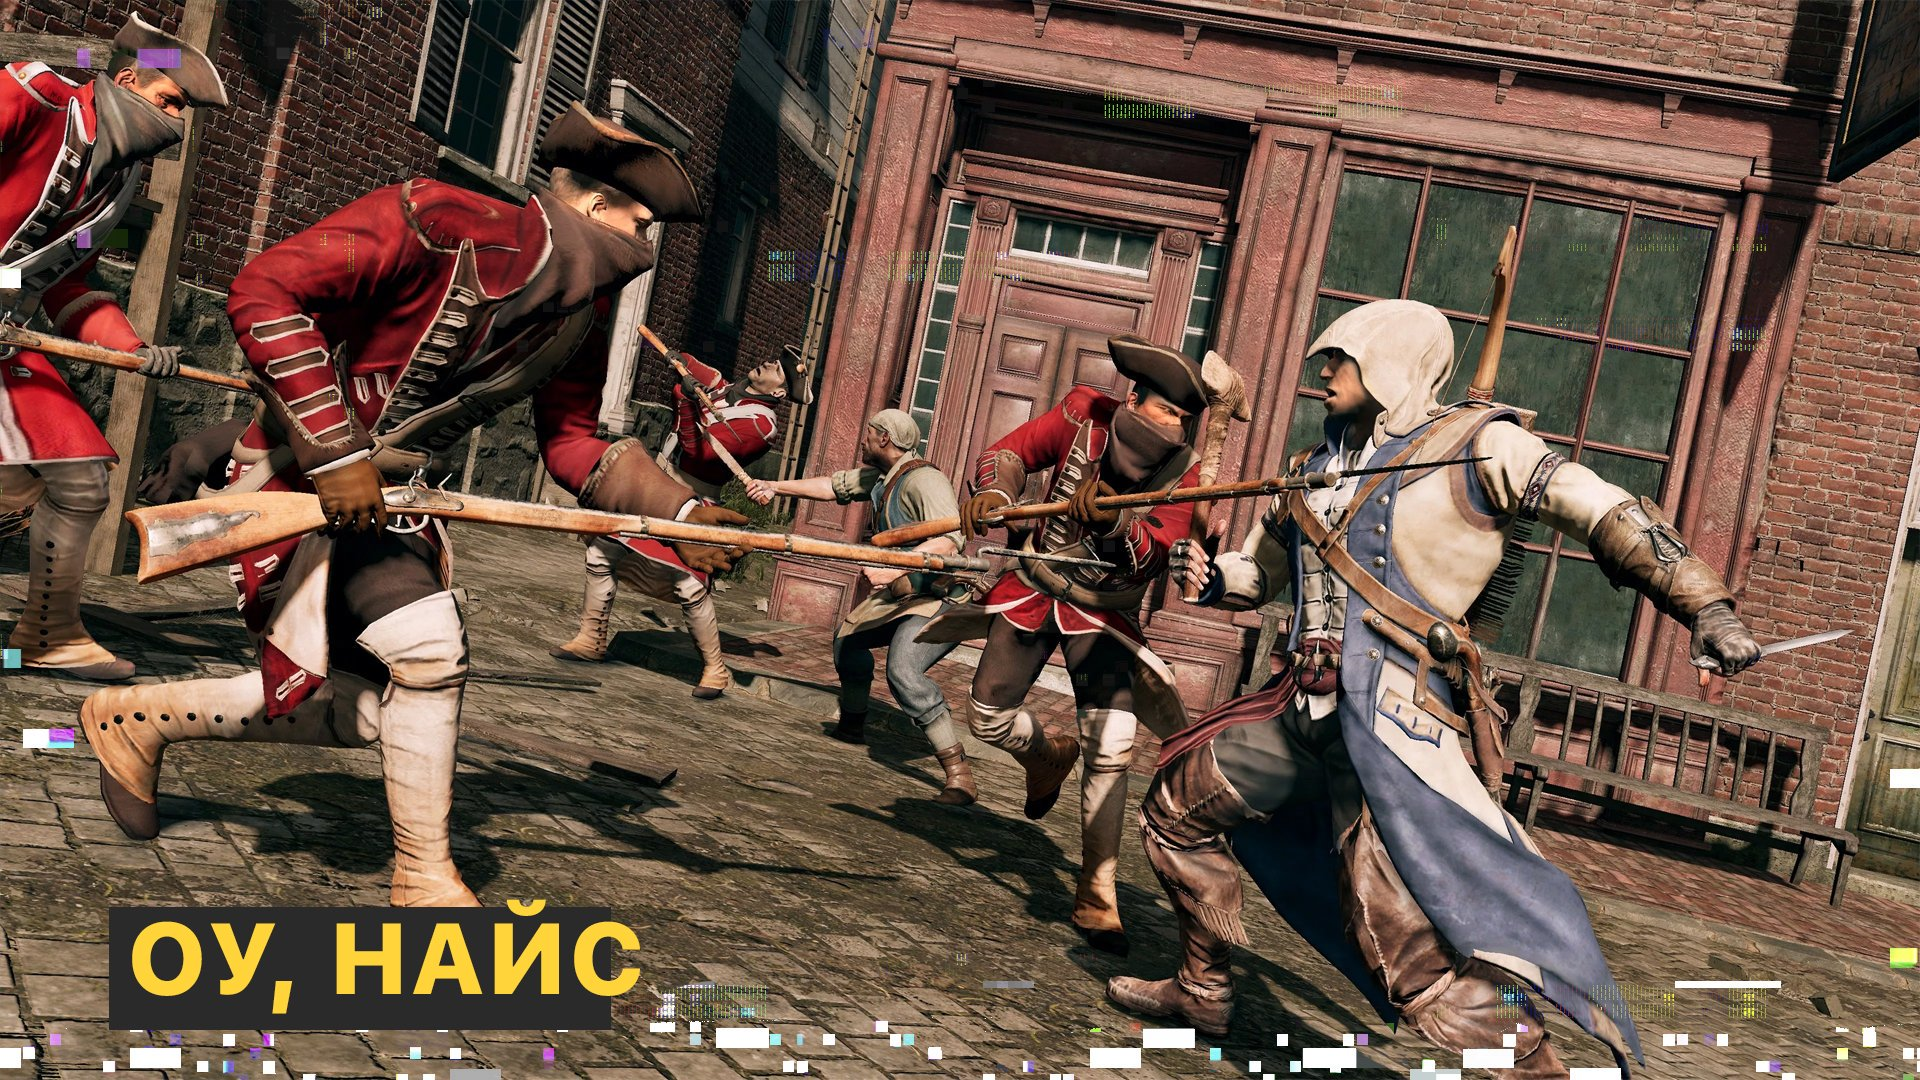 assassins creeds historical scenes -